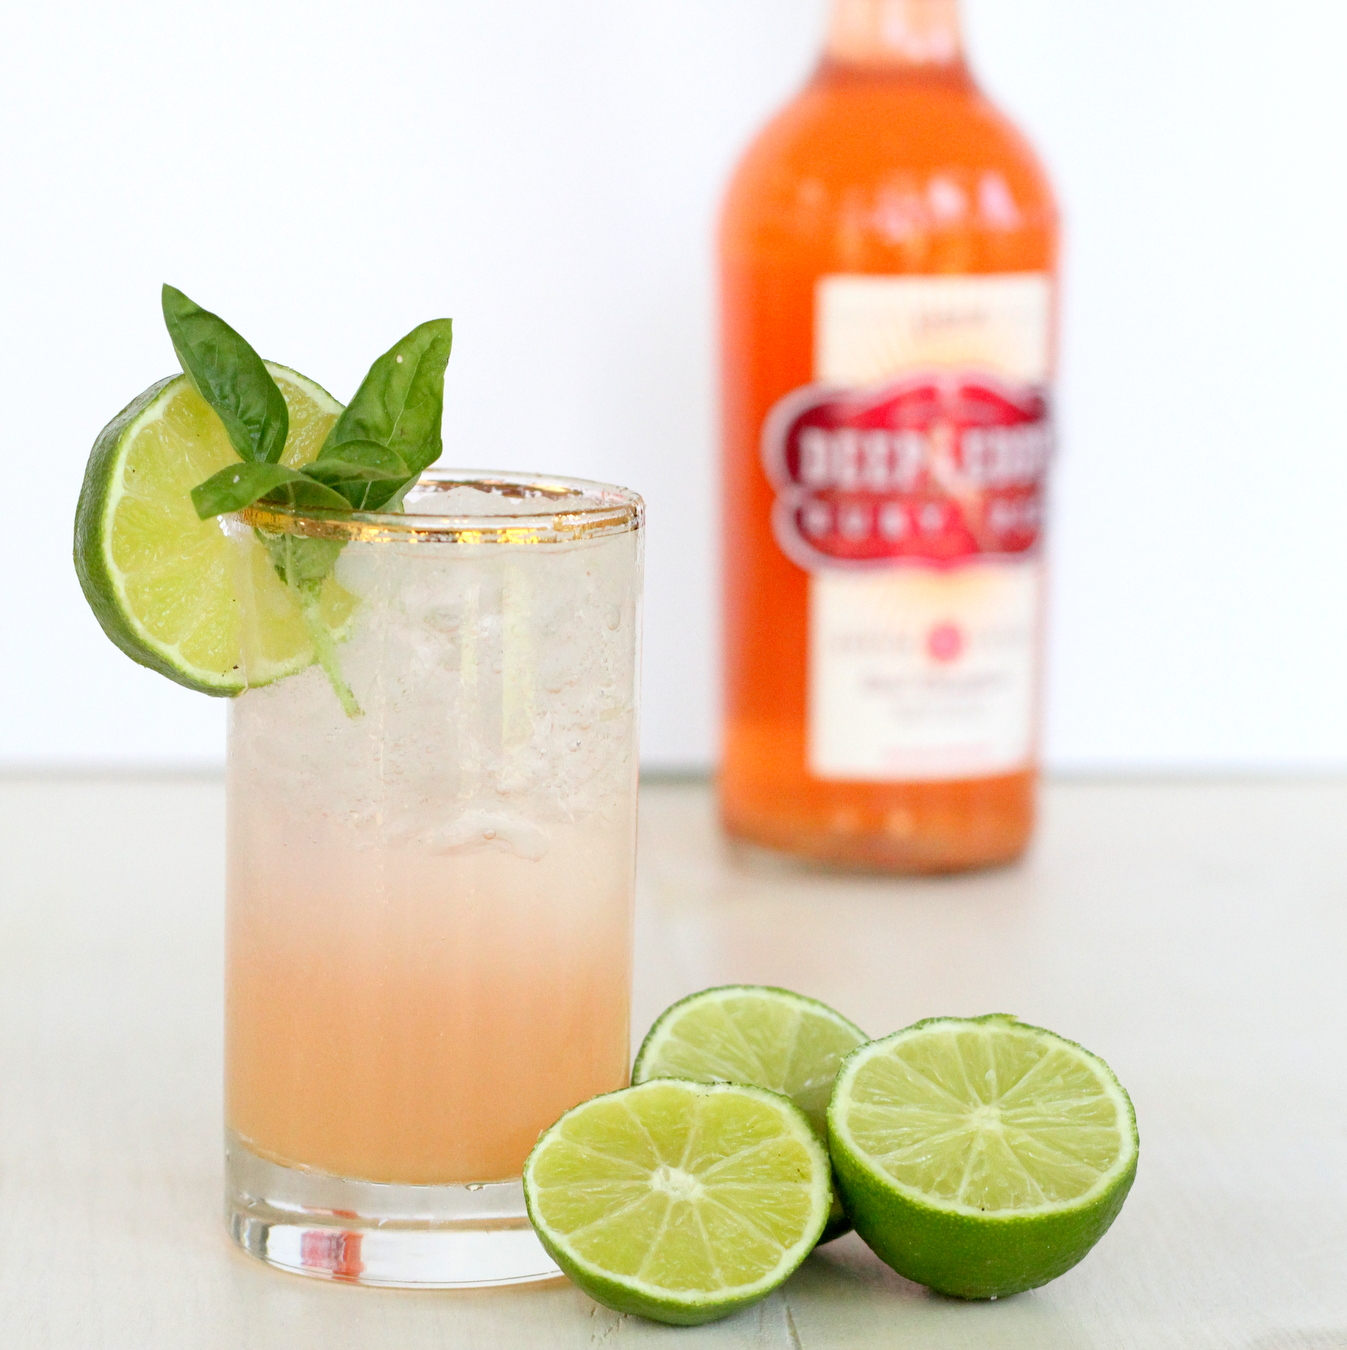 summer-y goodness- grapefruit chiltons